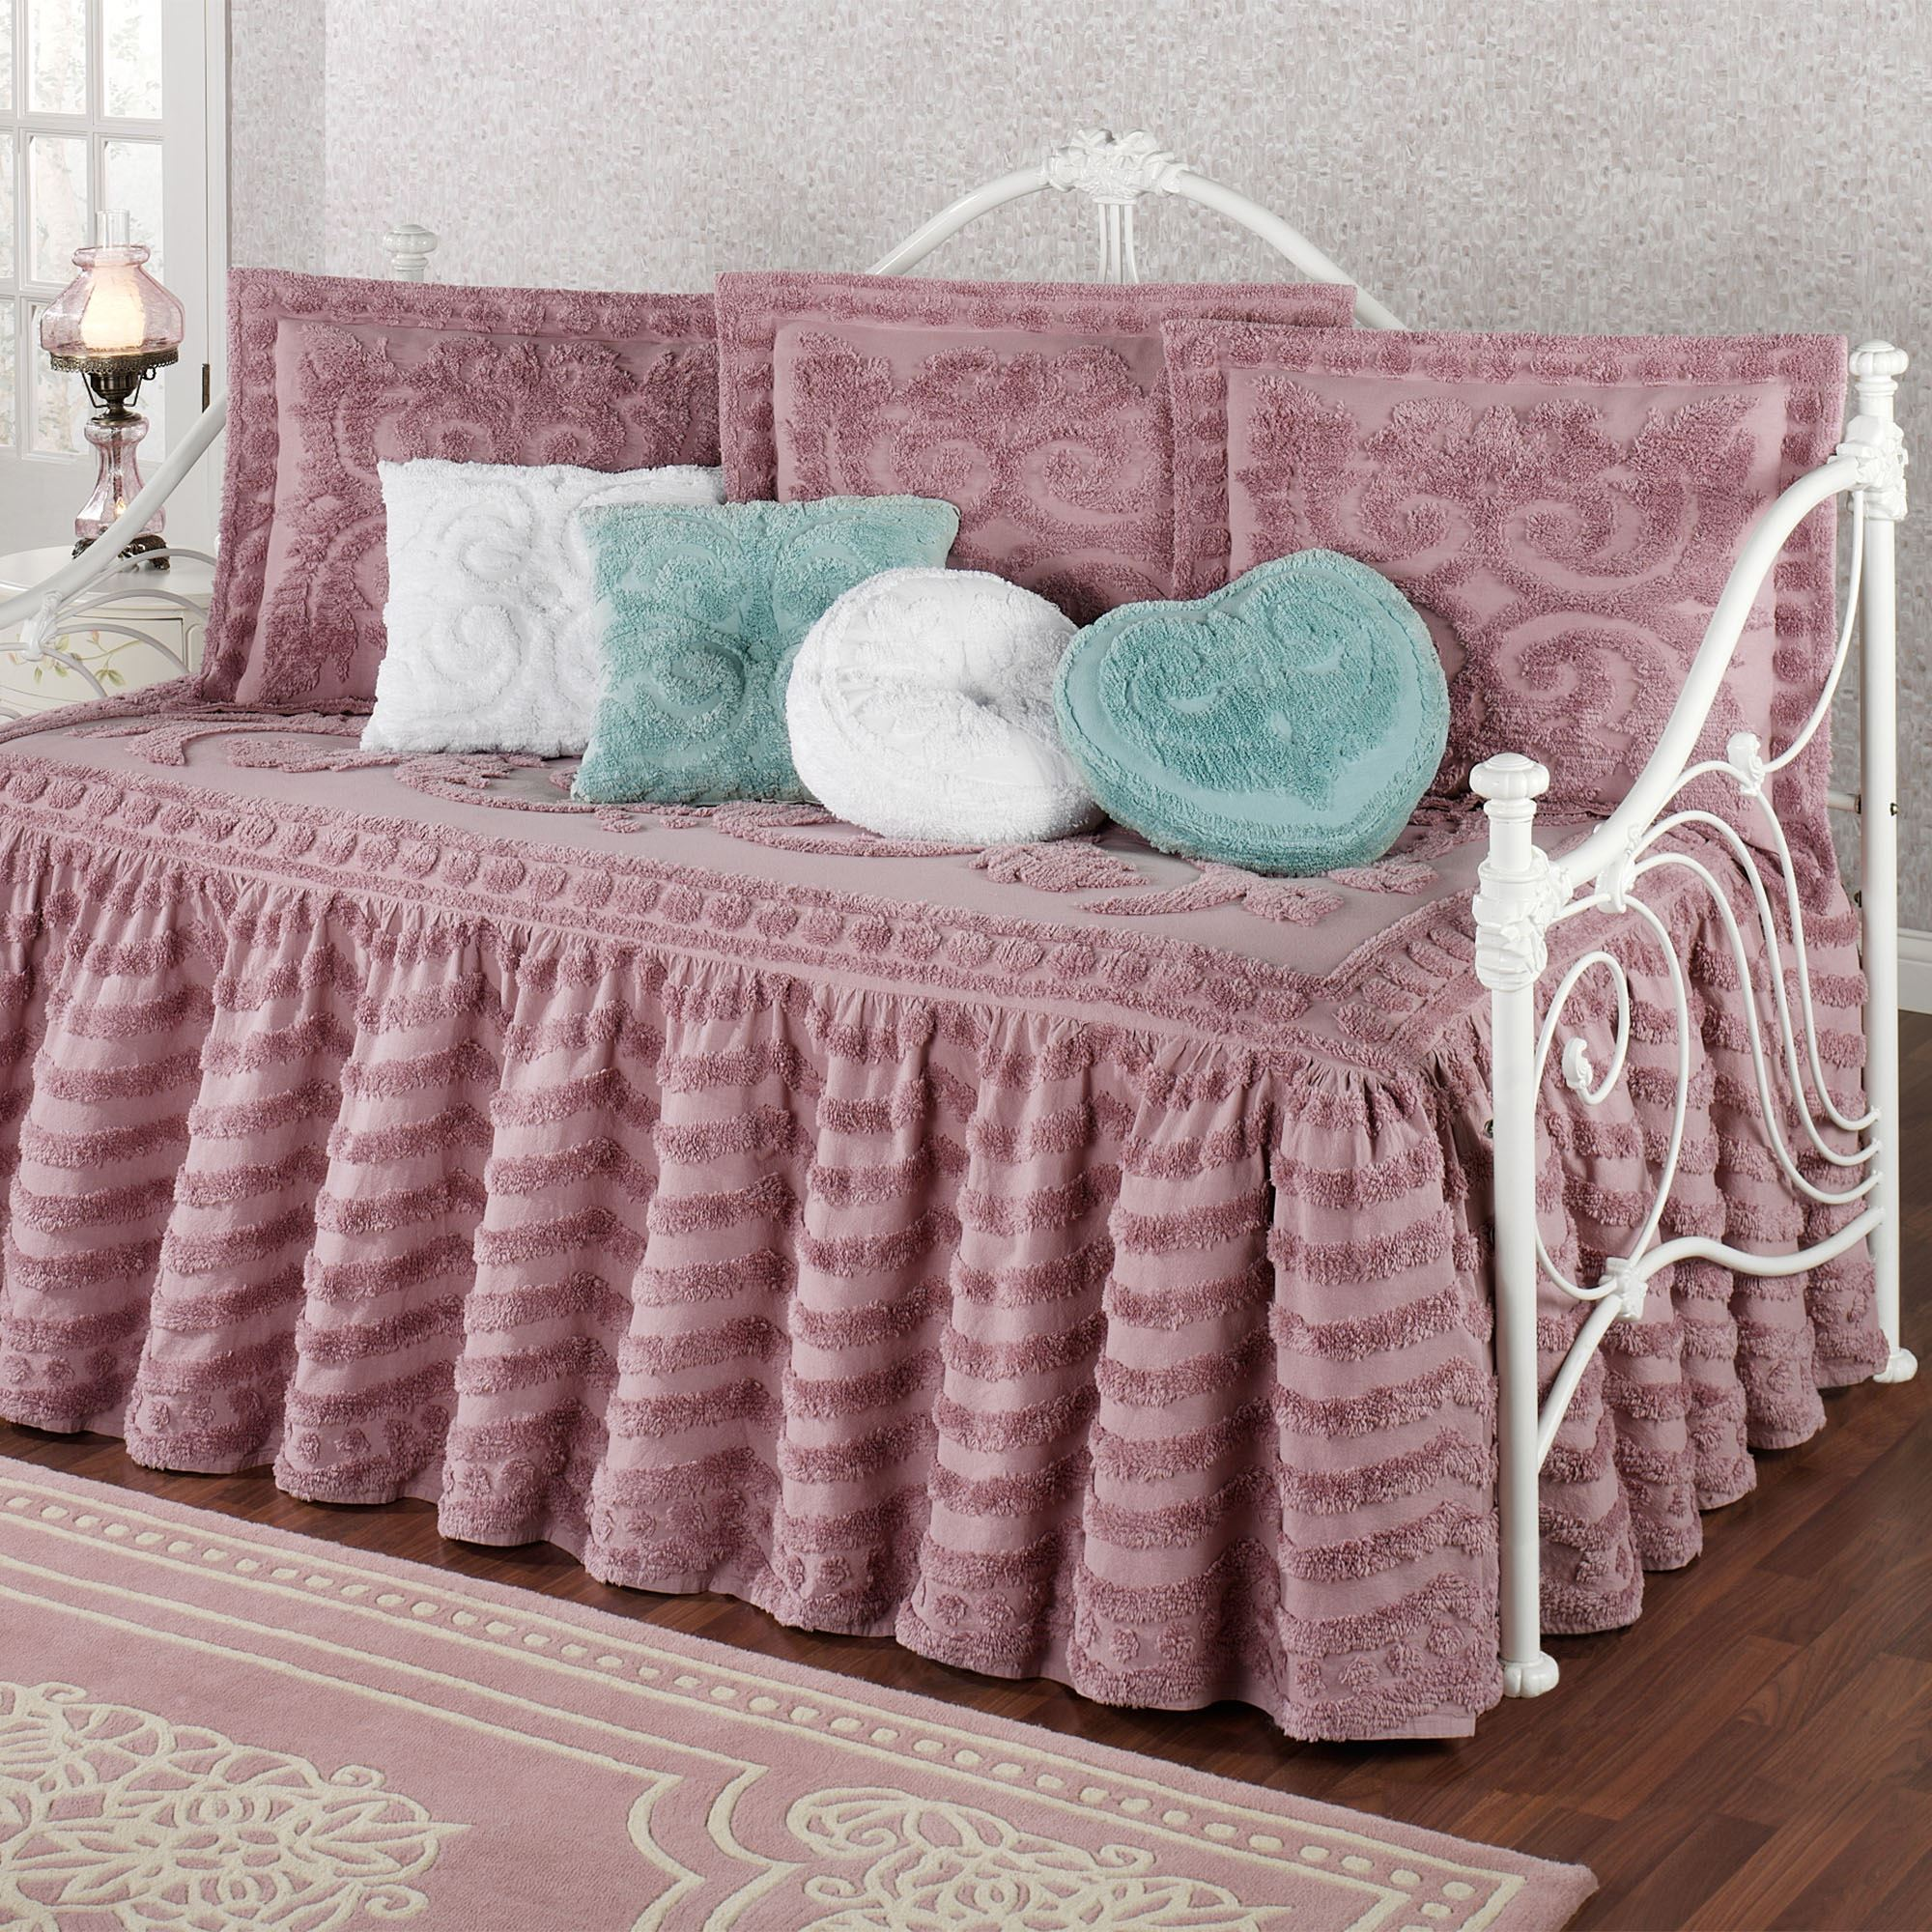 of home forters unique twin bed little ideas sets bedding decoration girl purple girls pinterest comforter